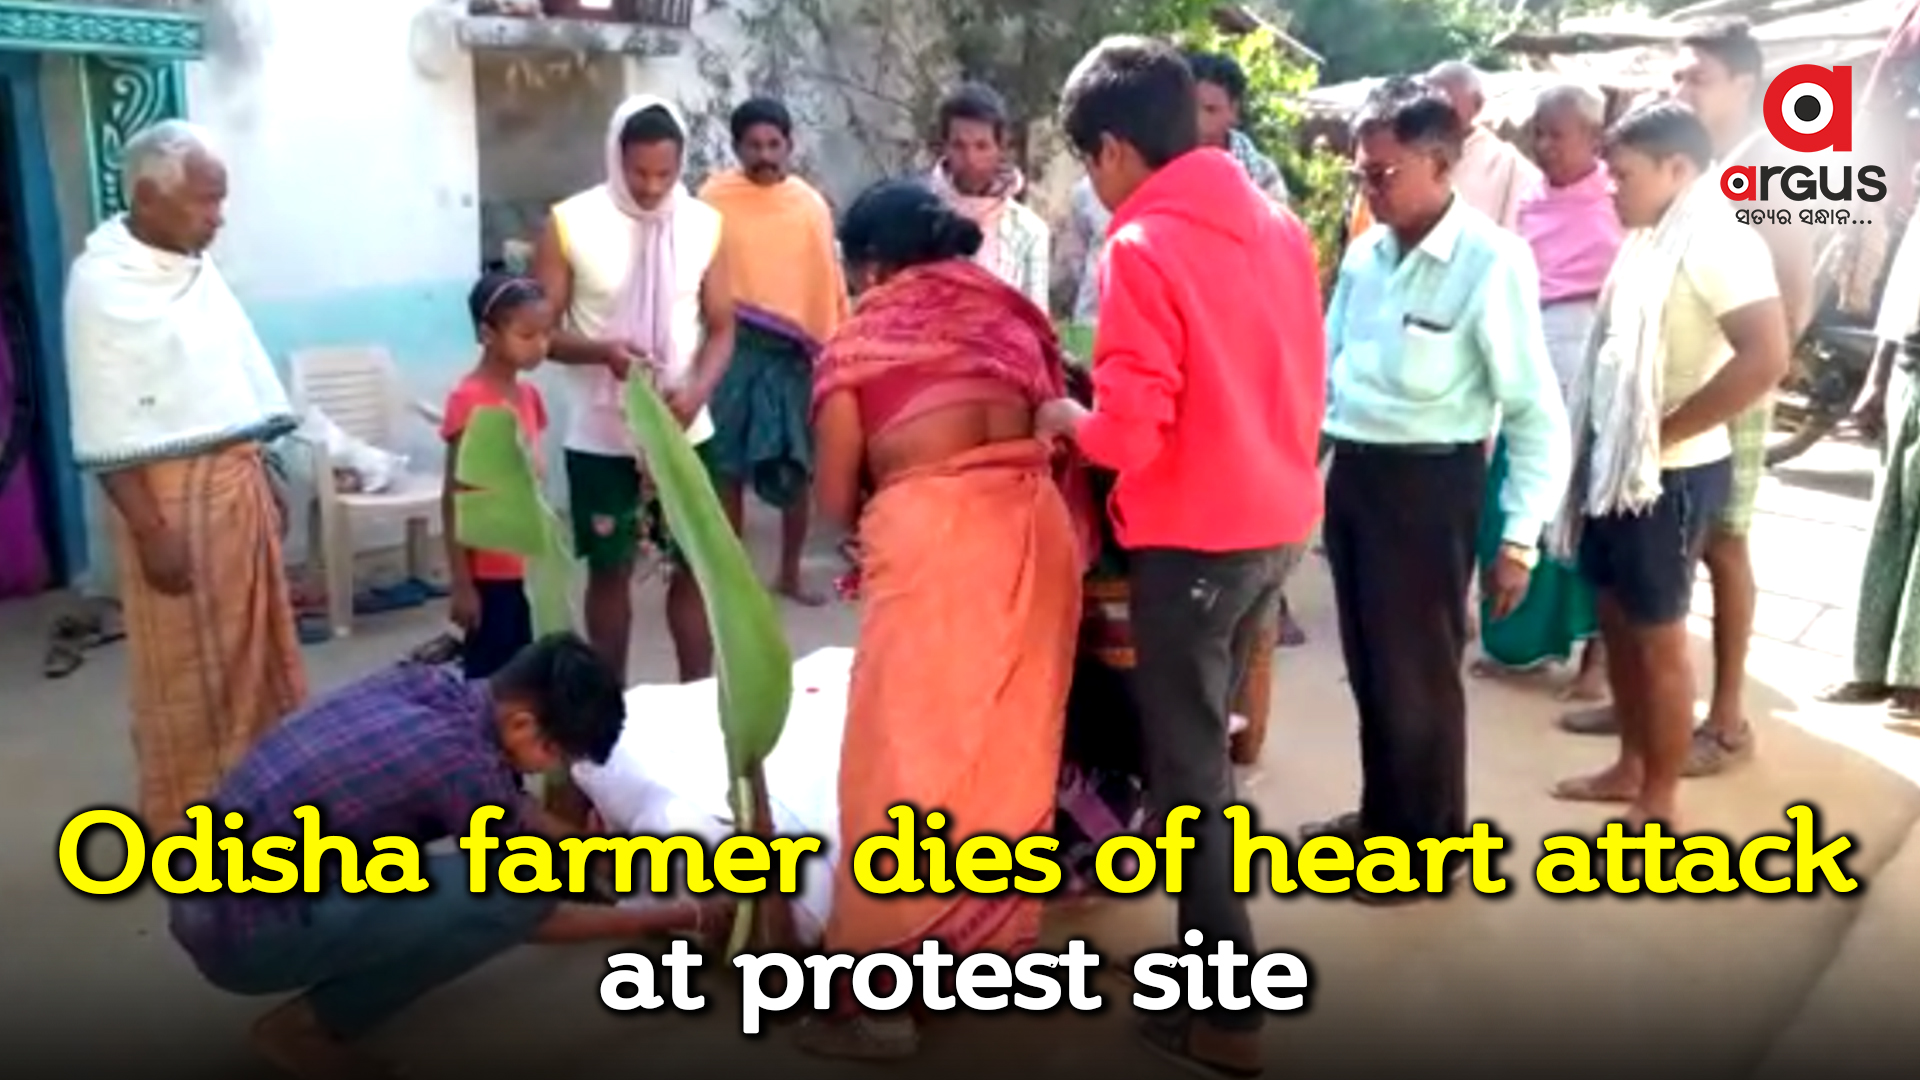 Protesting farmer dies of heart attack in Odisha